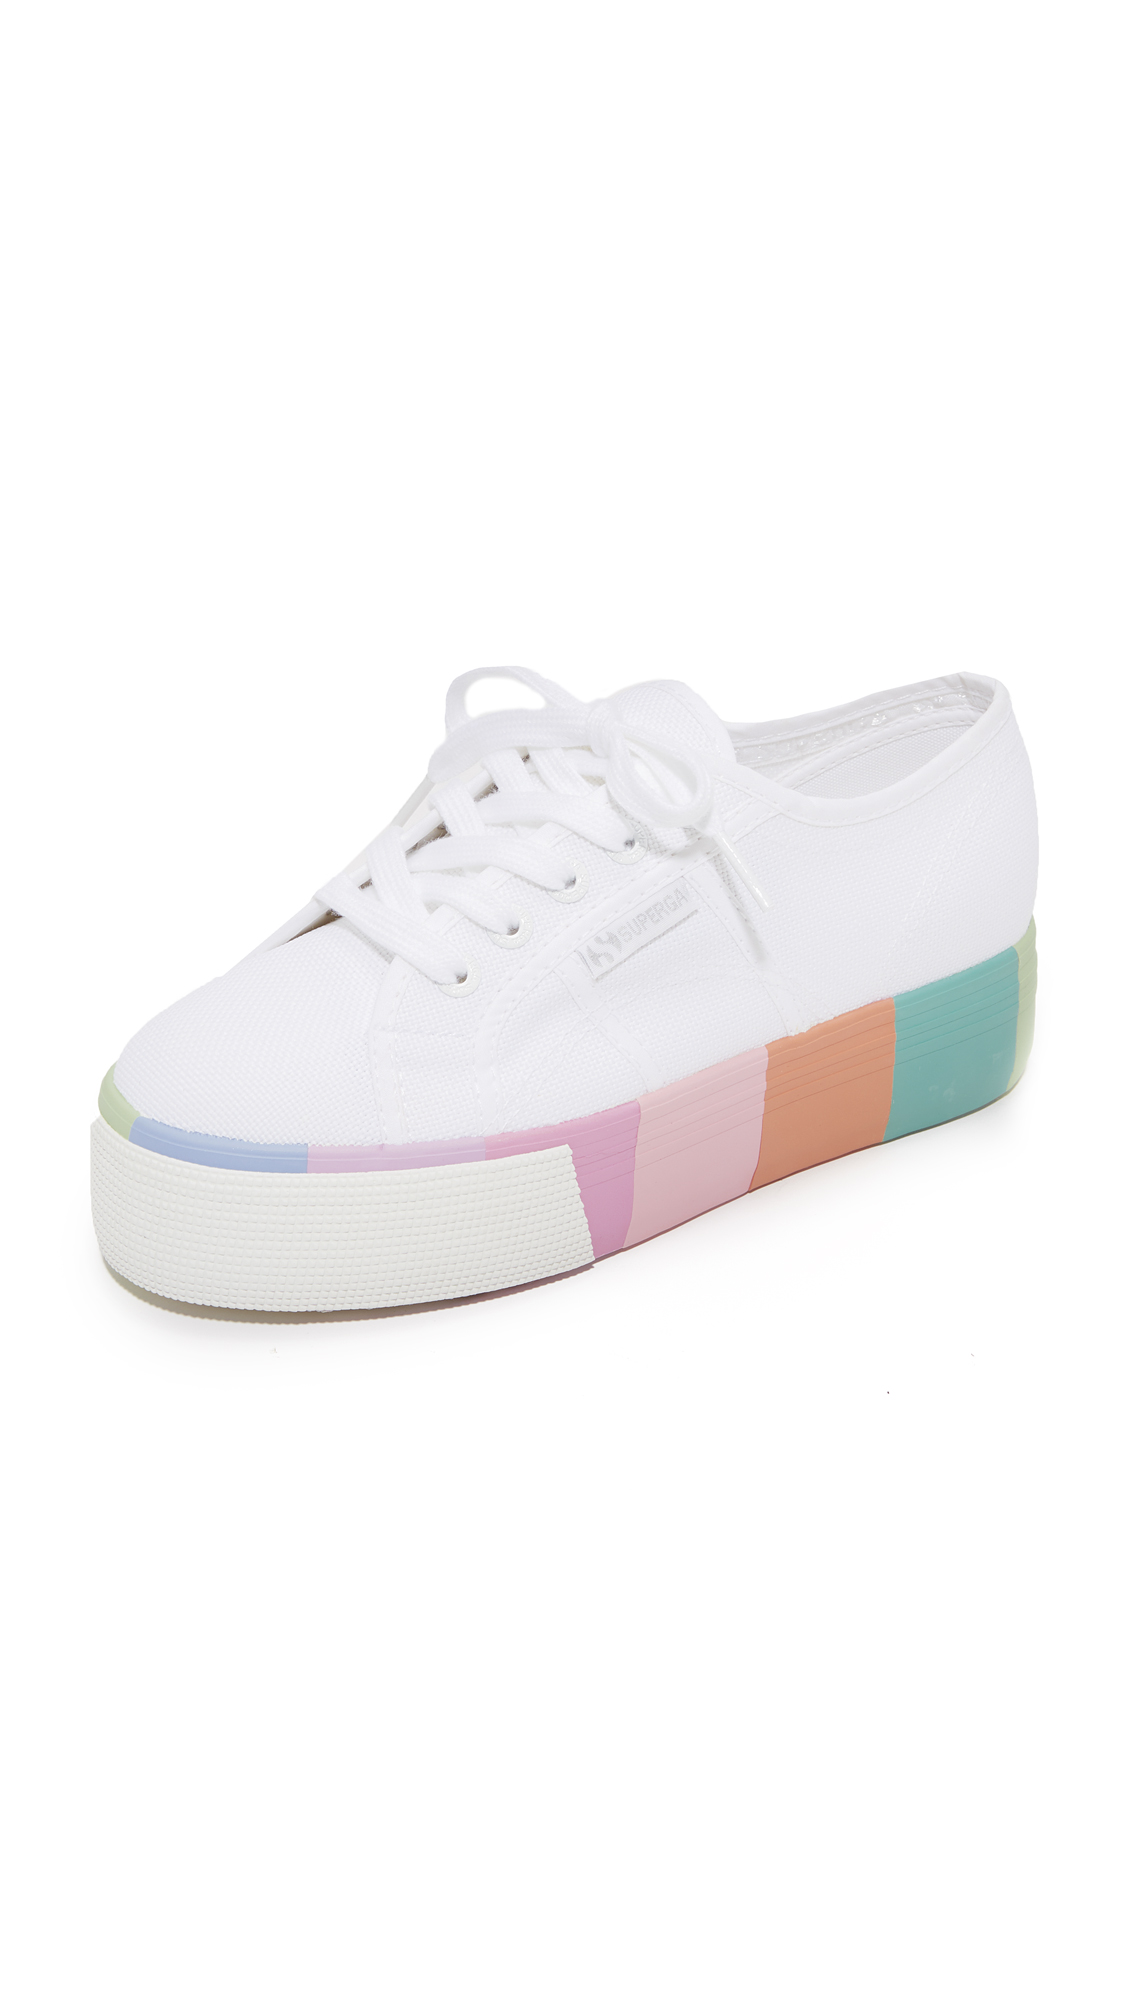 Superga 2790 Multi Platform Sneakers - White